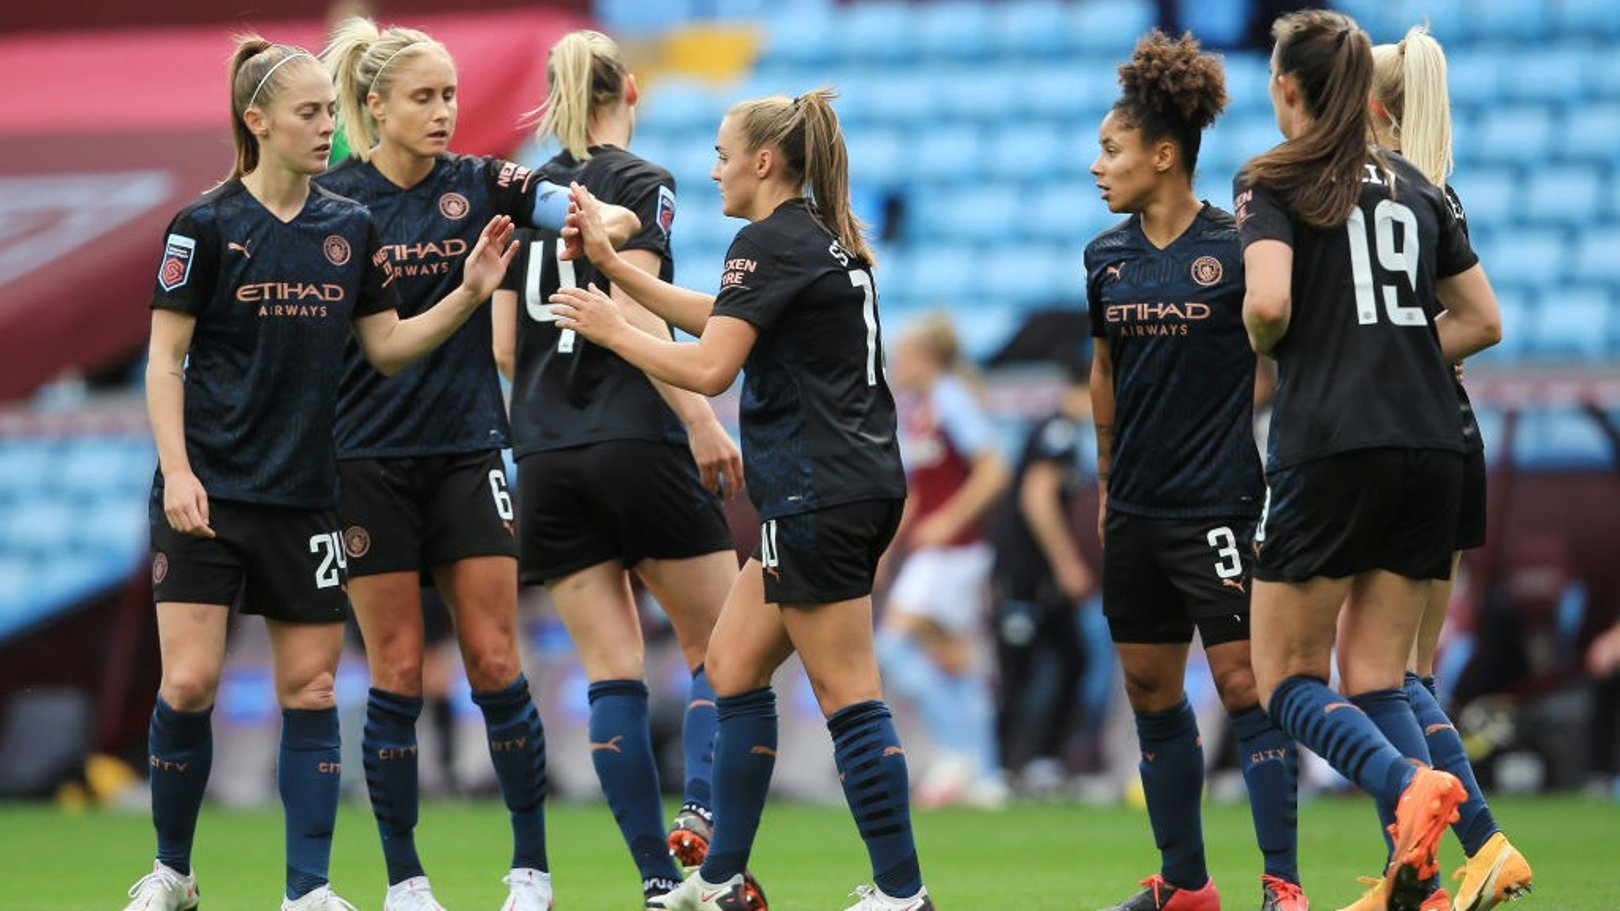 City learn potential opponents for FA Women's Cup semi-final